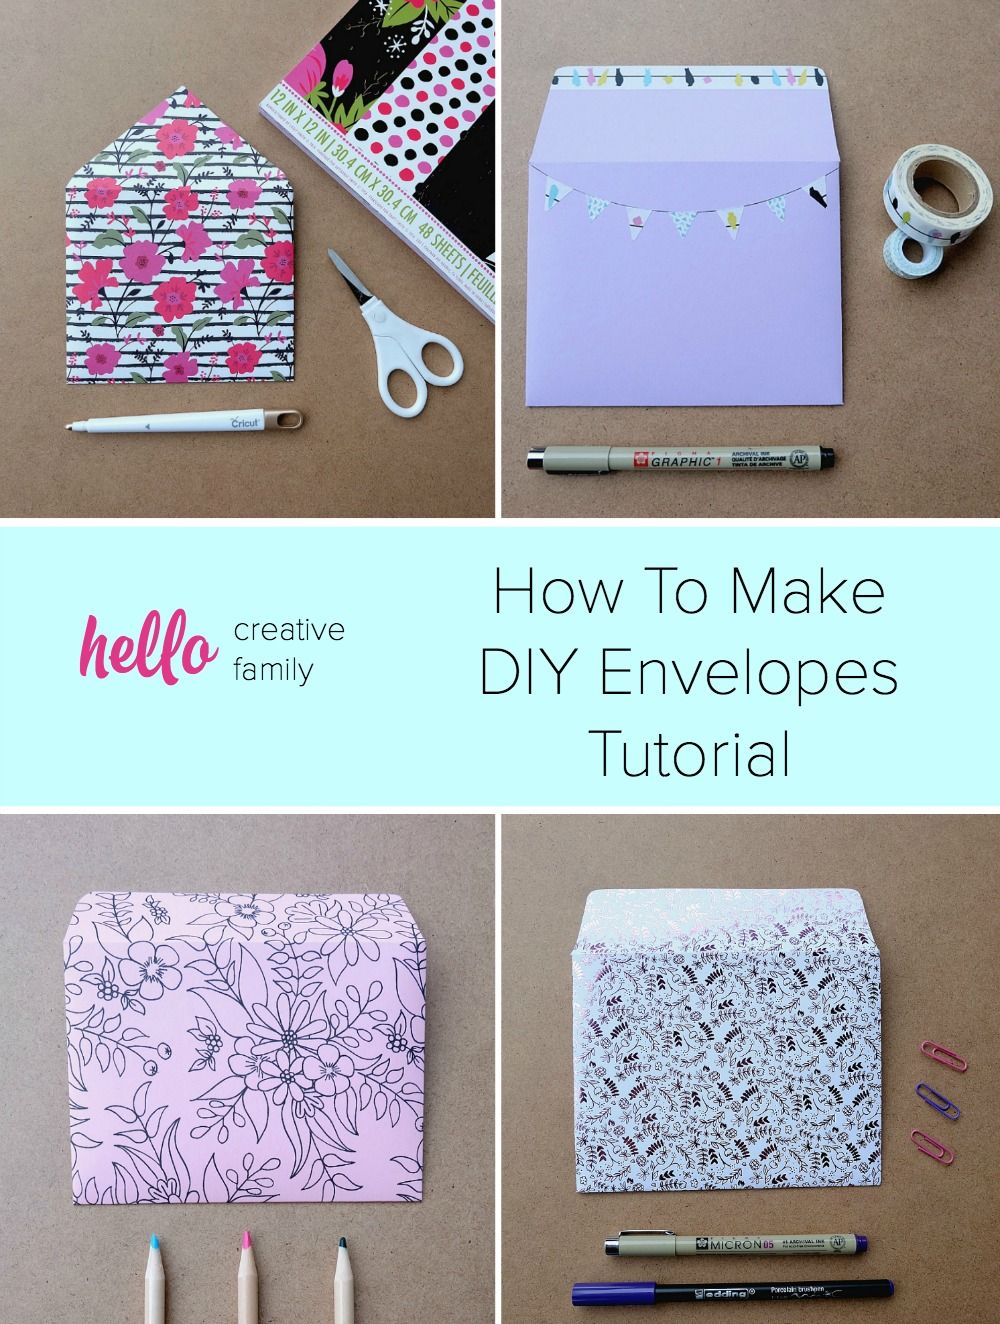 How to make diy envelopes tutorial diy envelope upcycle and youll want to hang onto old christmas and birthday card envelopes after reading this post upcycle old envelopes into envelope templates learn how to make bookmarktalkfo